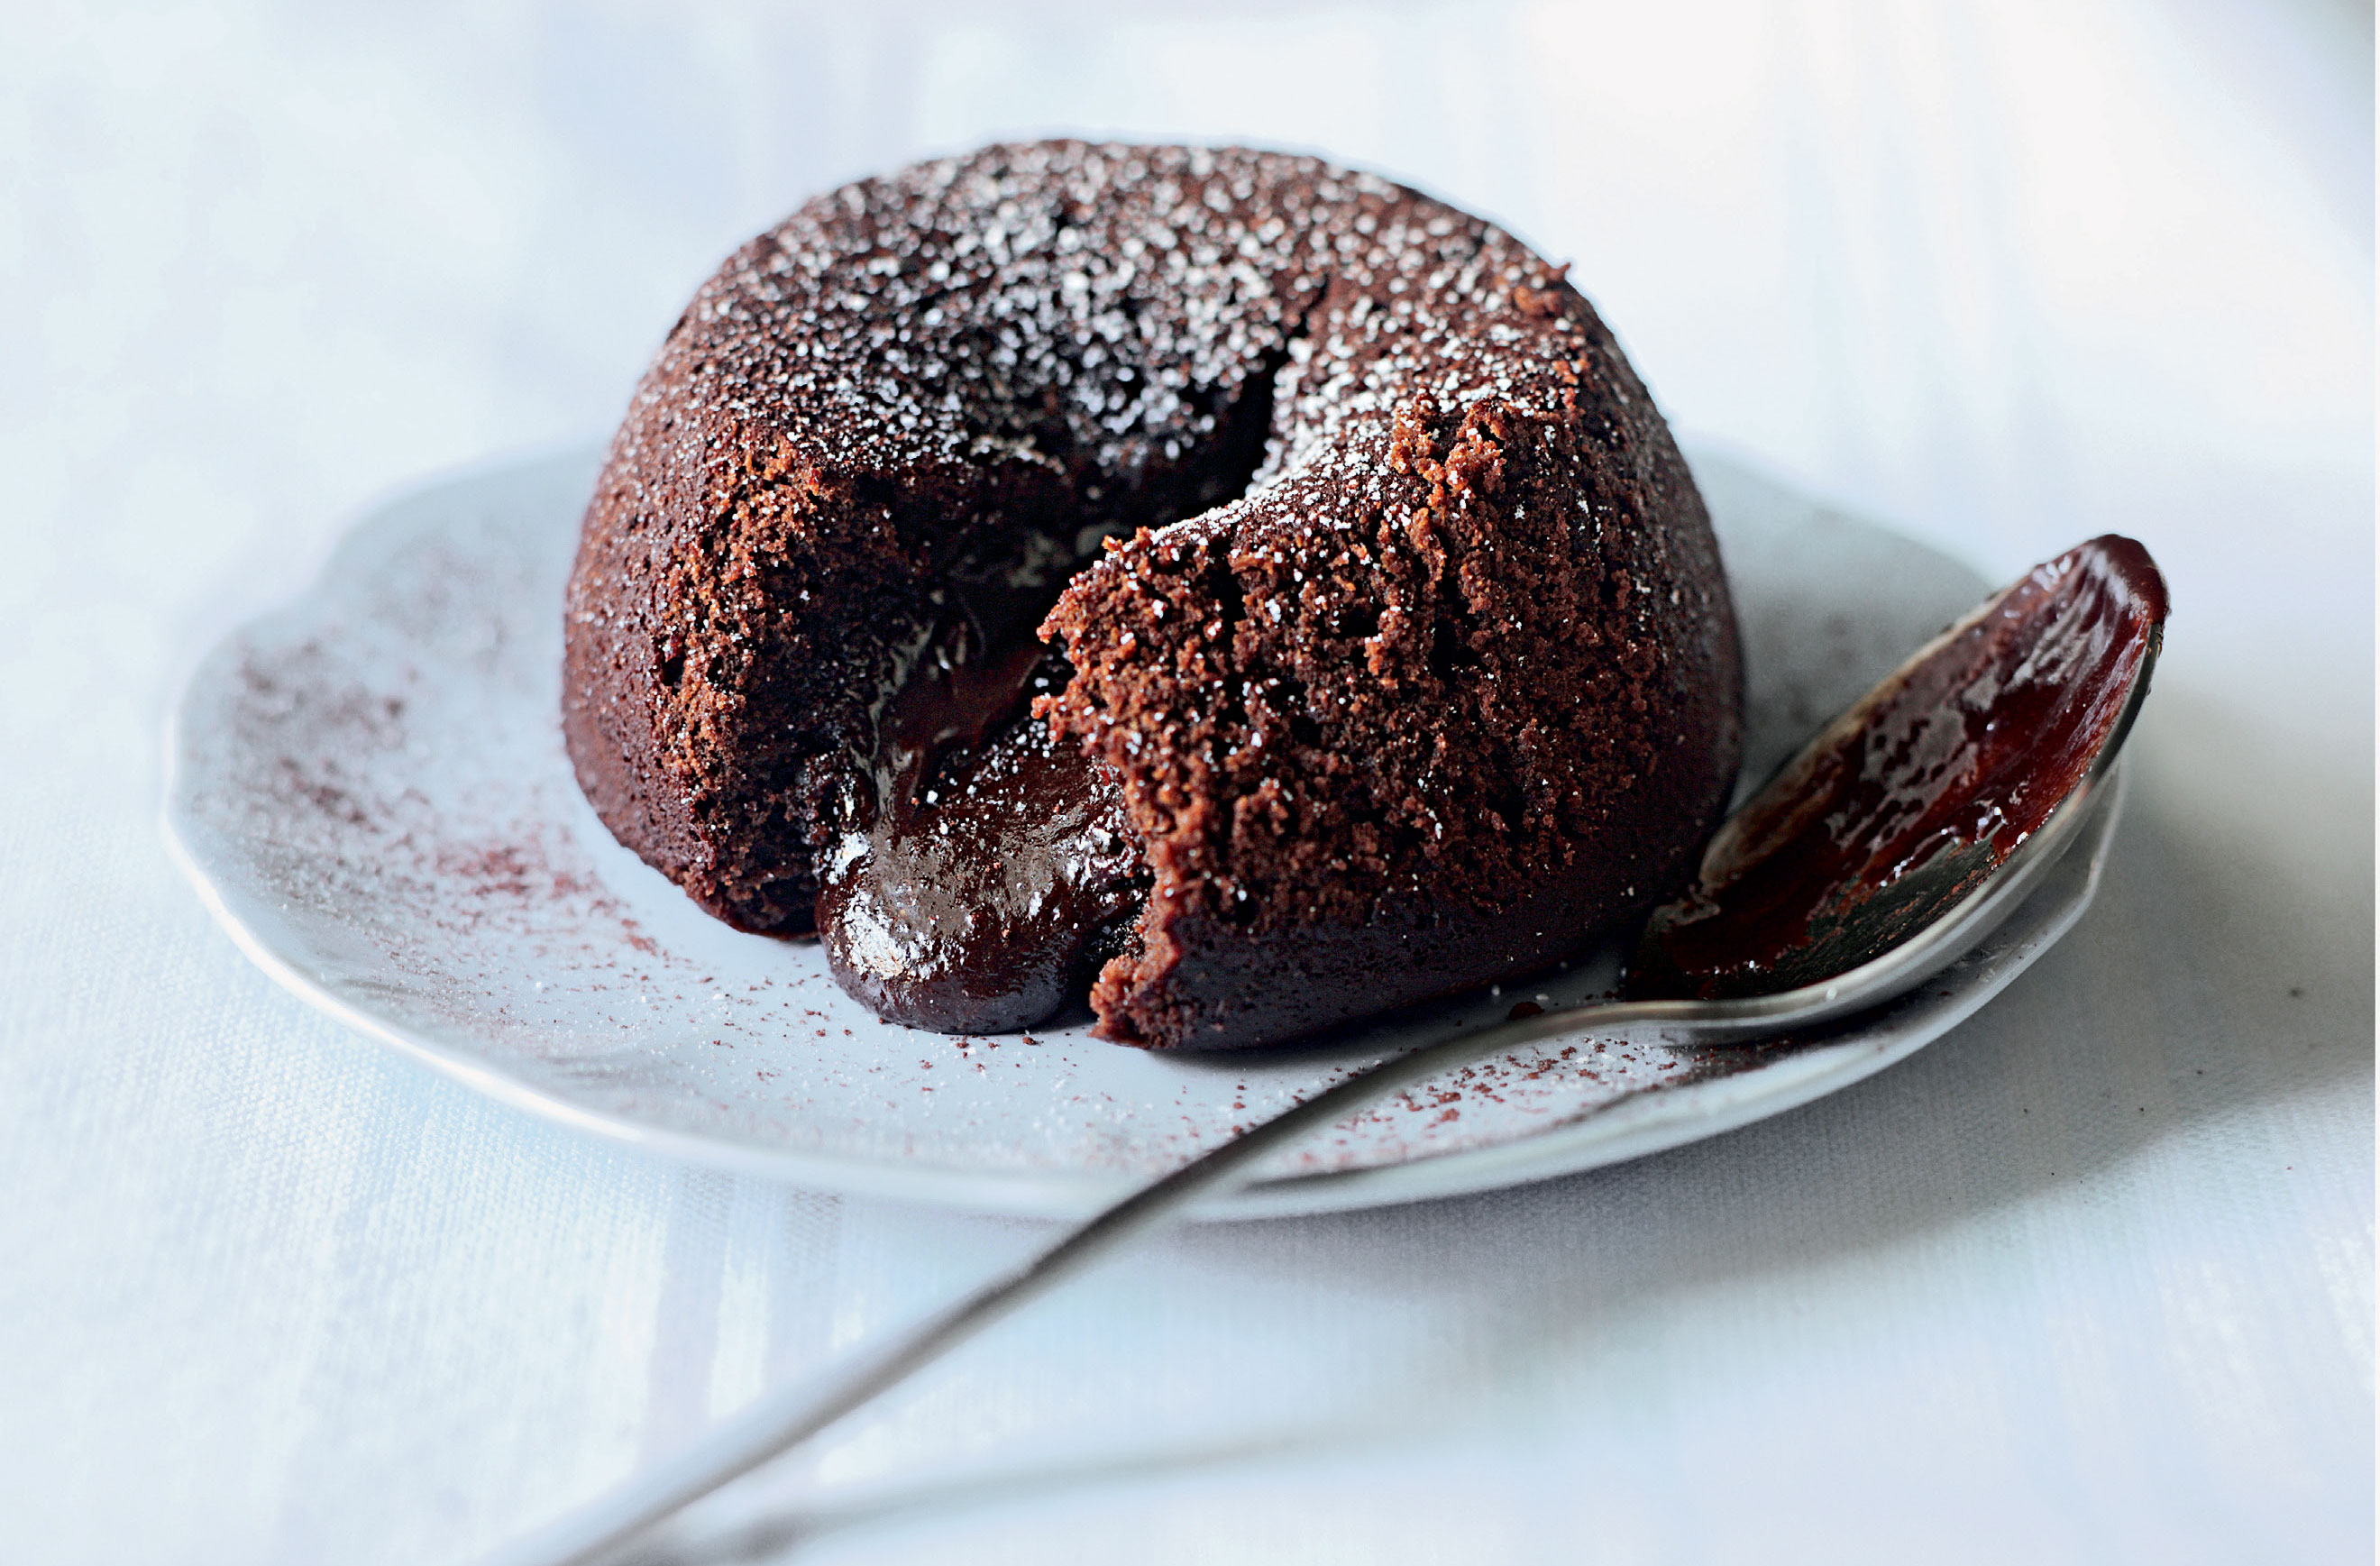 Chocolate Fondant Dessert Recipes Goodtoknow